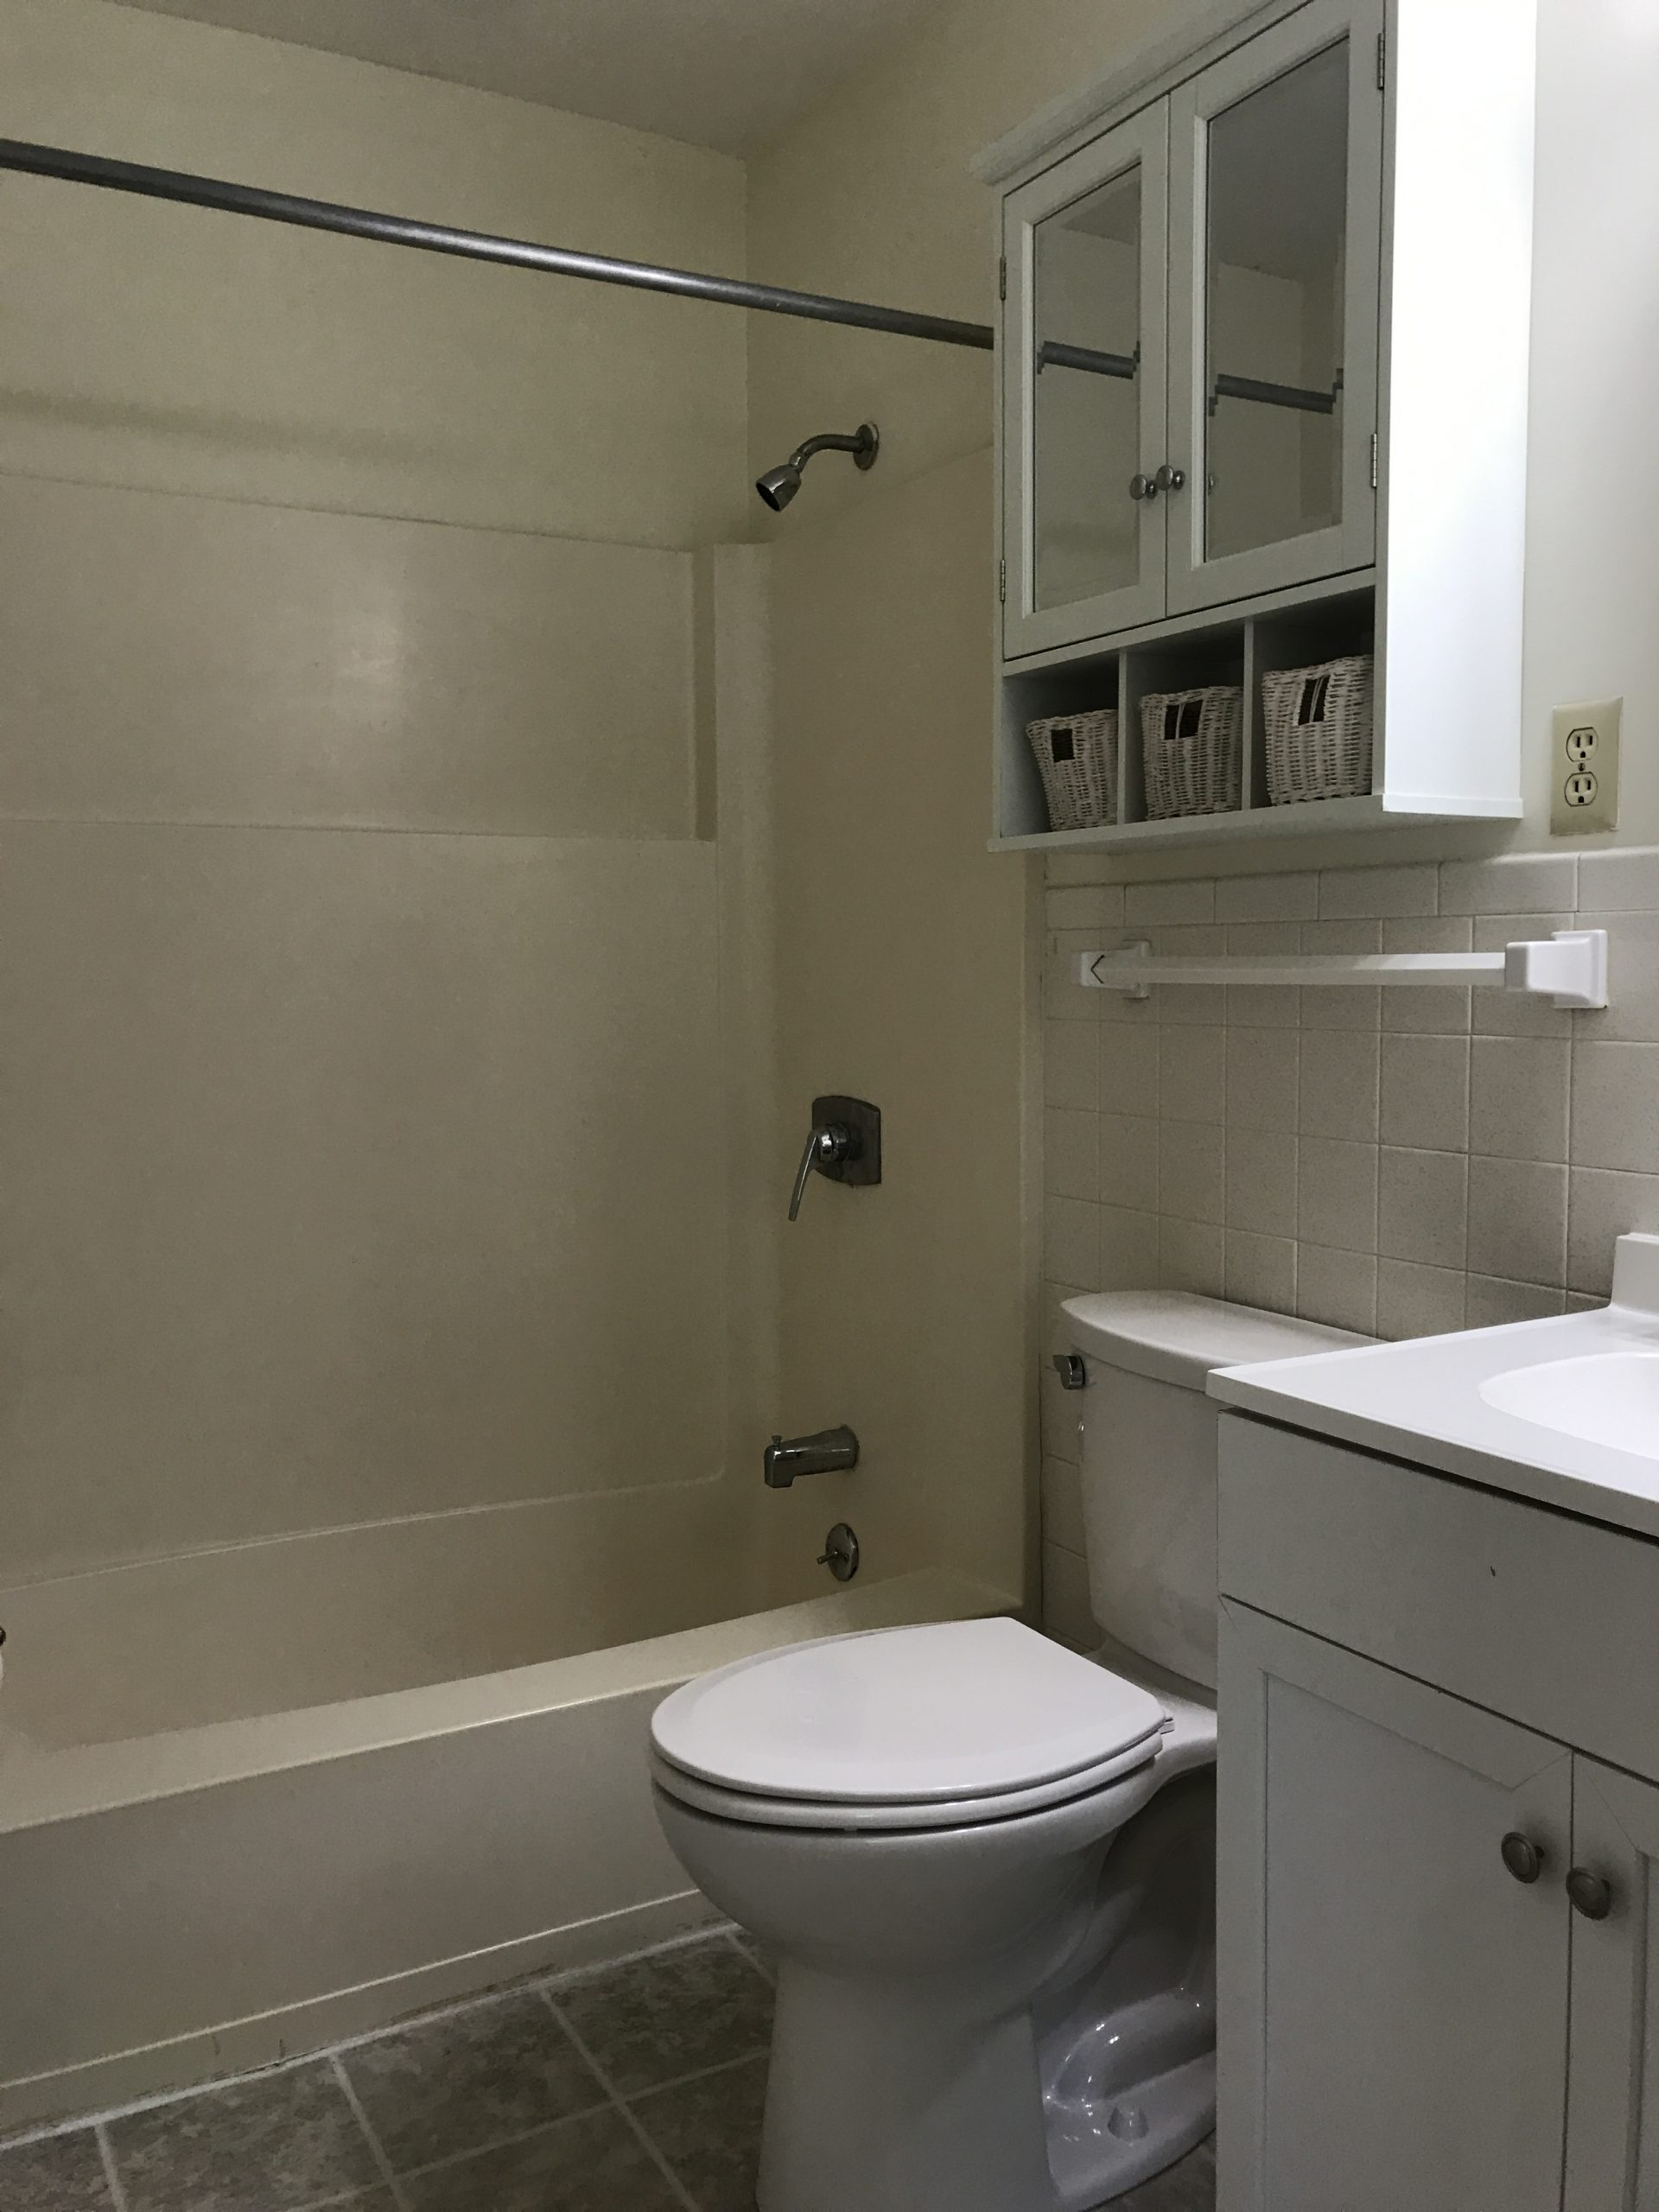 Tub/ SHower unit